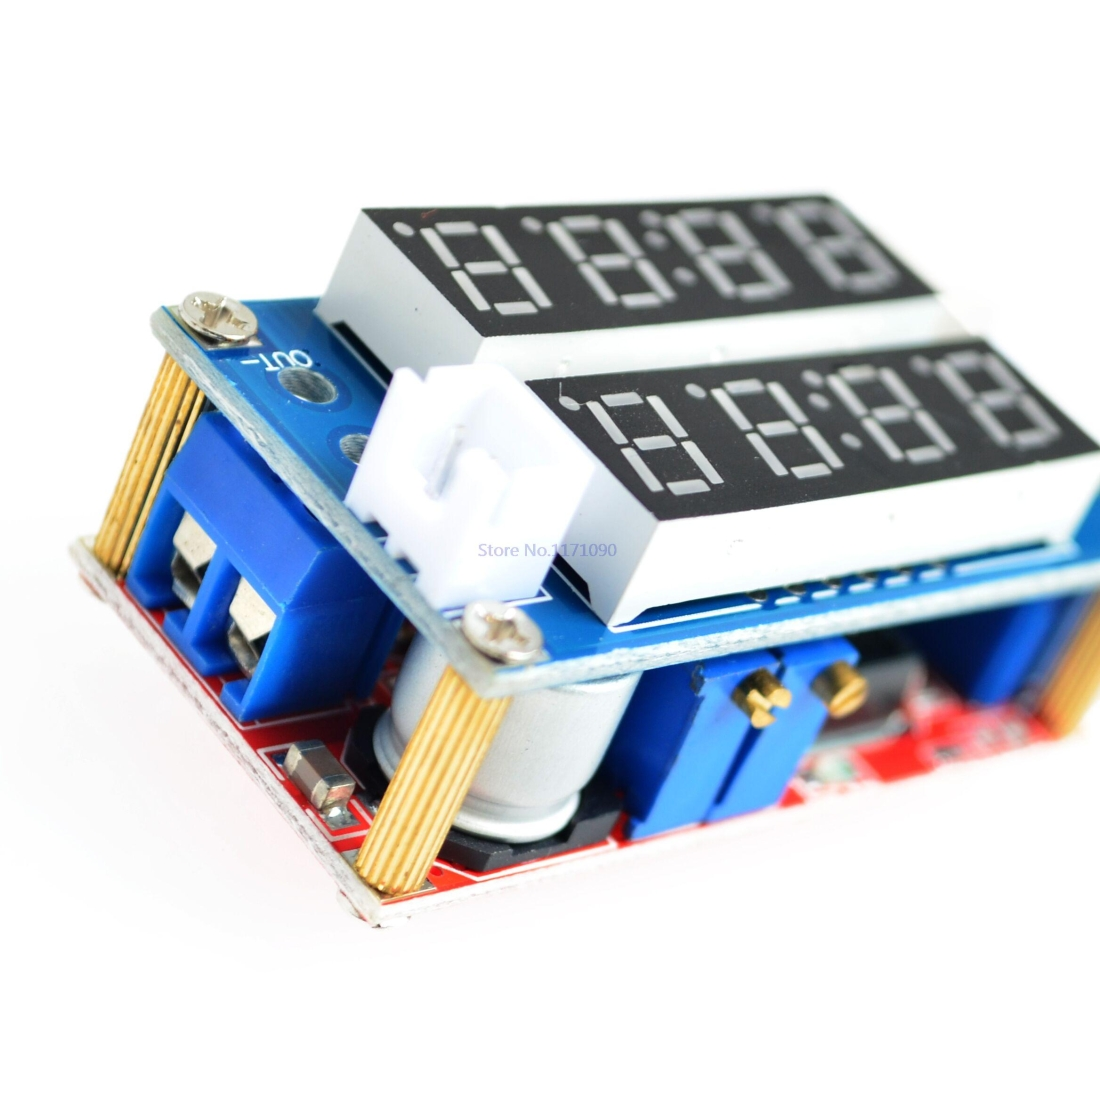 5A Constant Current Constant Voltage LED Drive Adjustable Power Supply Lithium Ion Battery Charging Current Voltage Meter